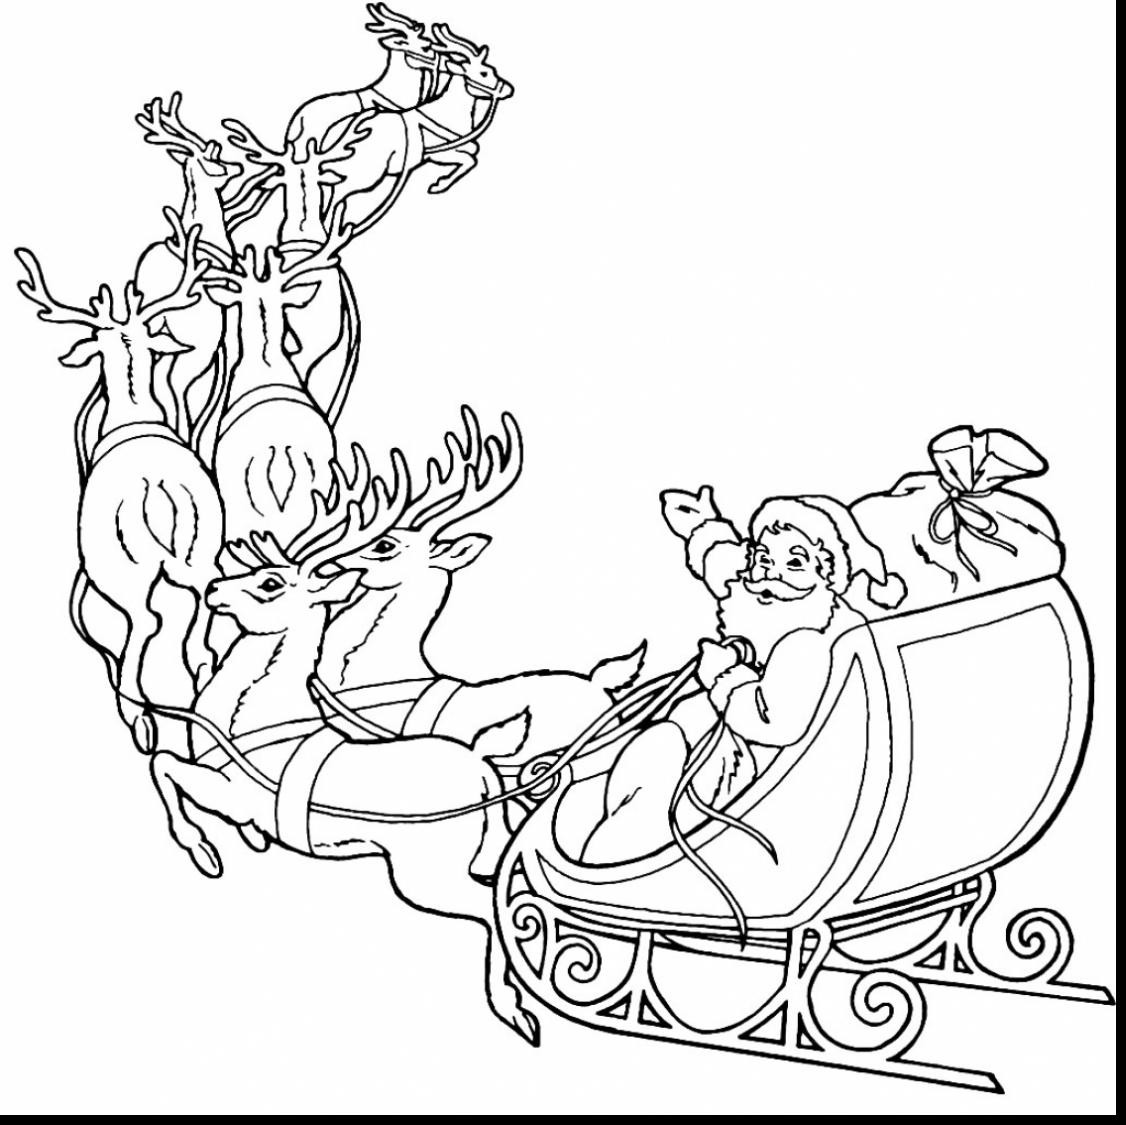 Santa And Reindeer Coloring Pictures With Claus Pages Wordsare Me